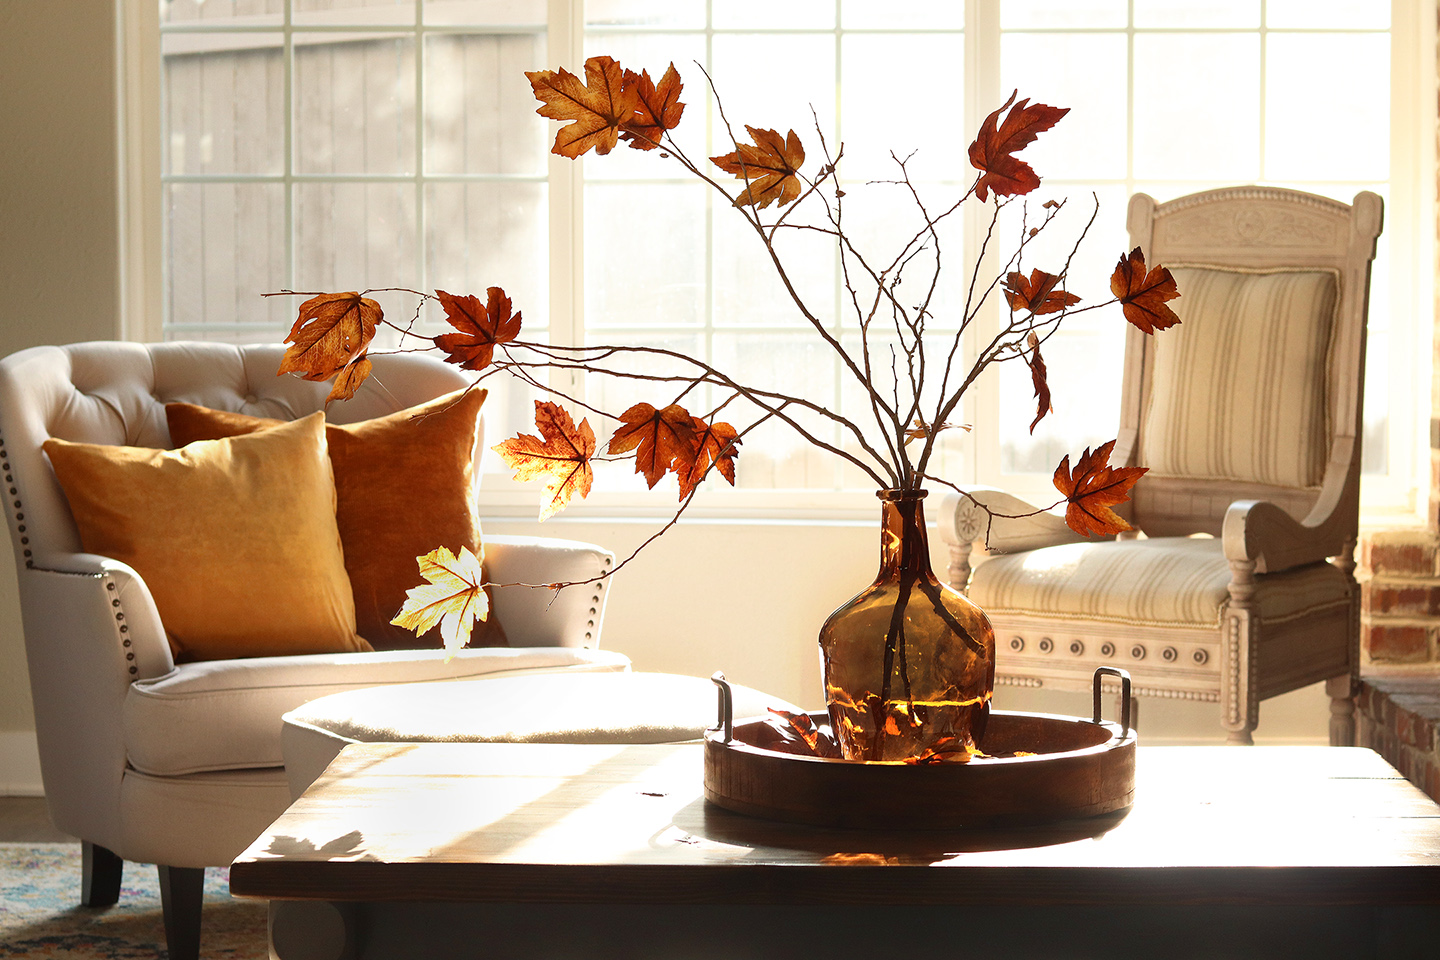 Pottery Barn Inspired Faux Fall Leaves Centerpiece